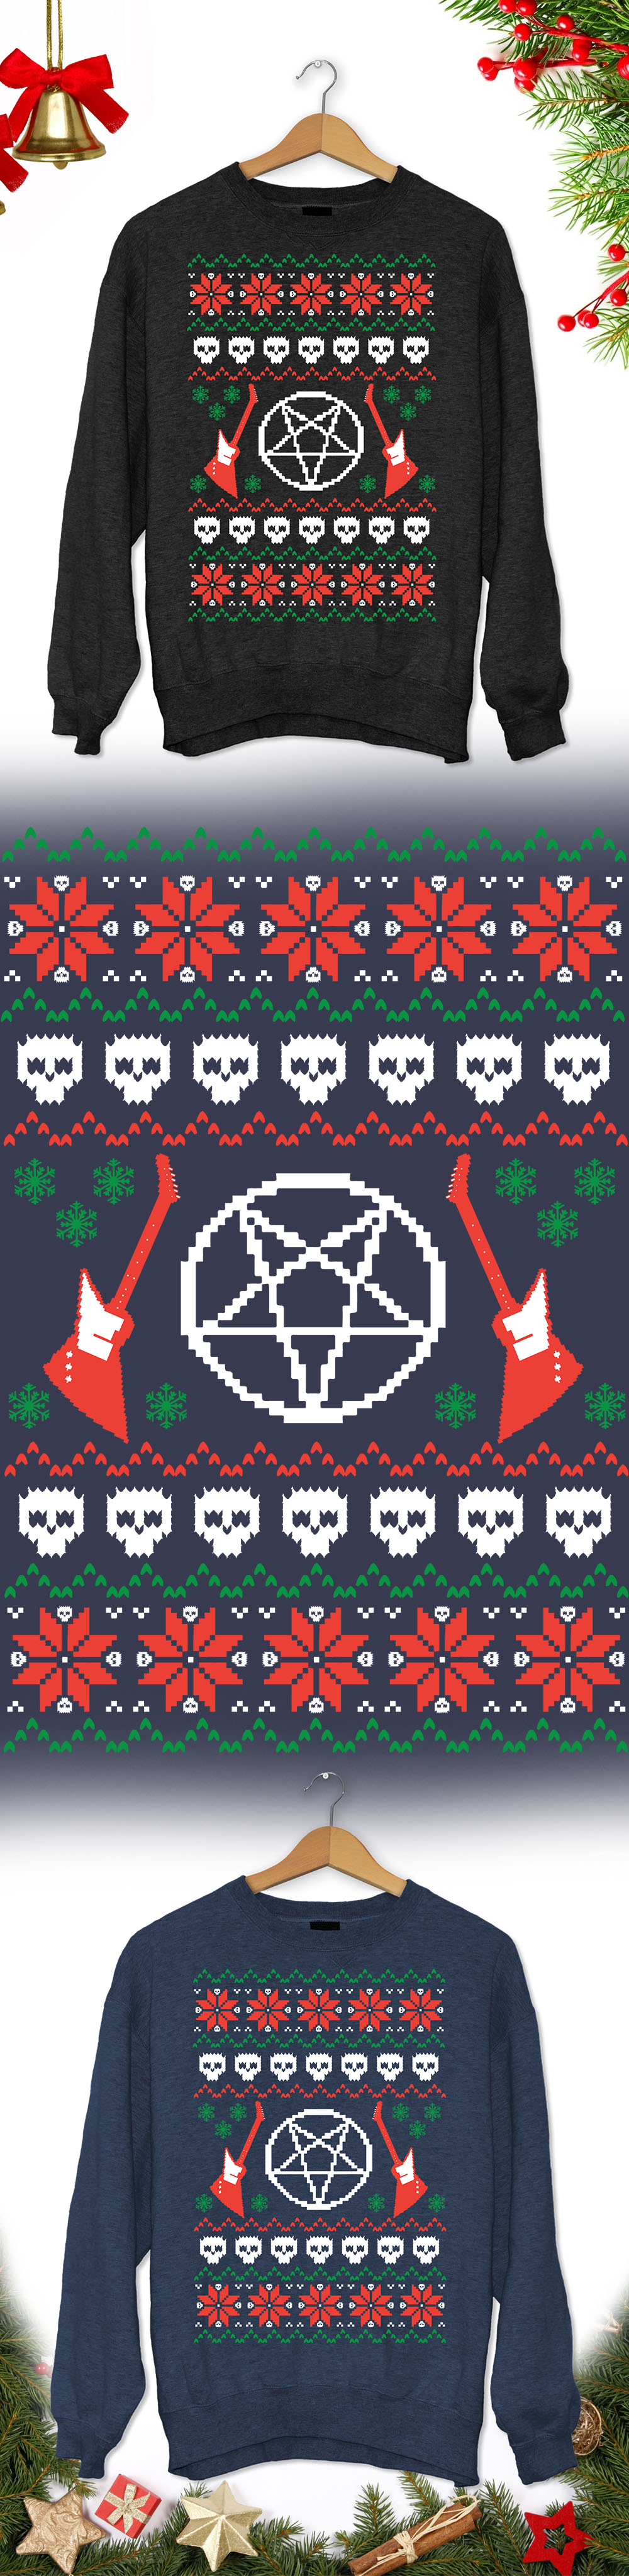 heavy metal christmas sweater limited edition order 2 or more for friendsfamily save on shipping makes a great gift - Metal Christmas Sweaters